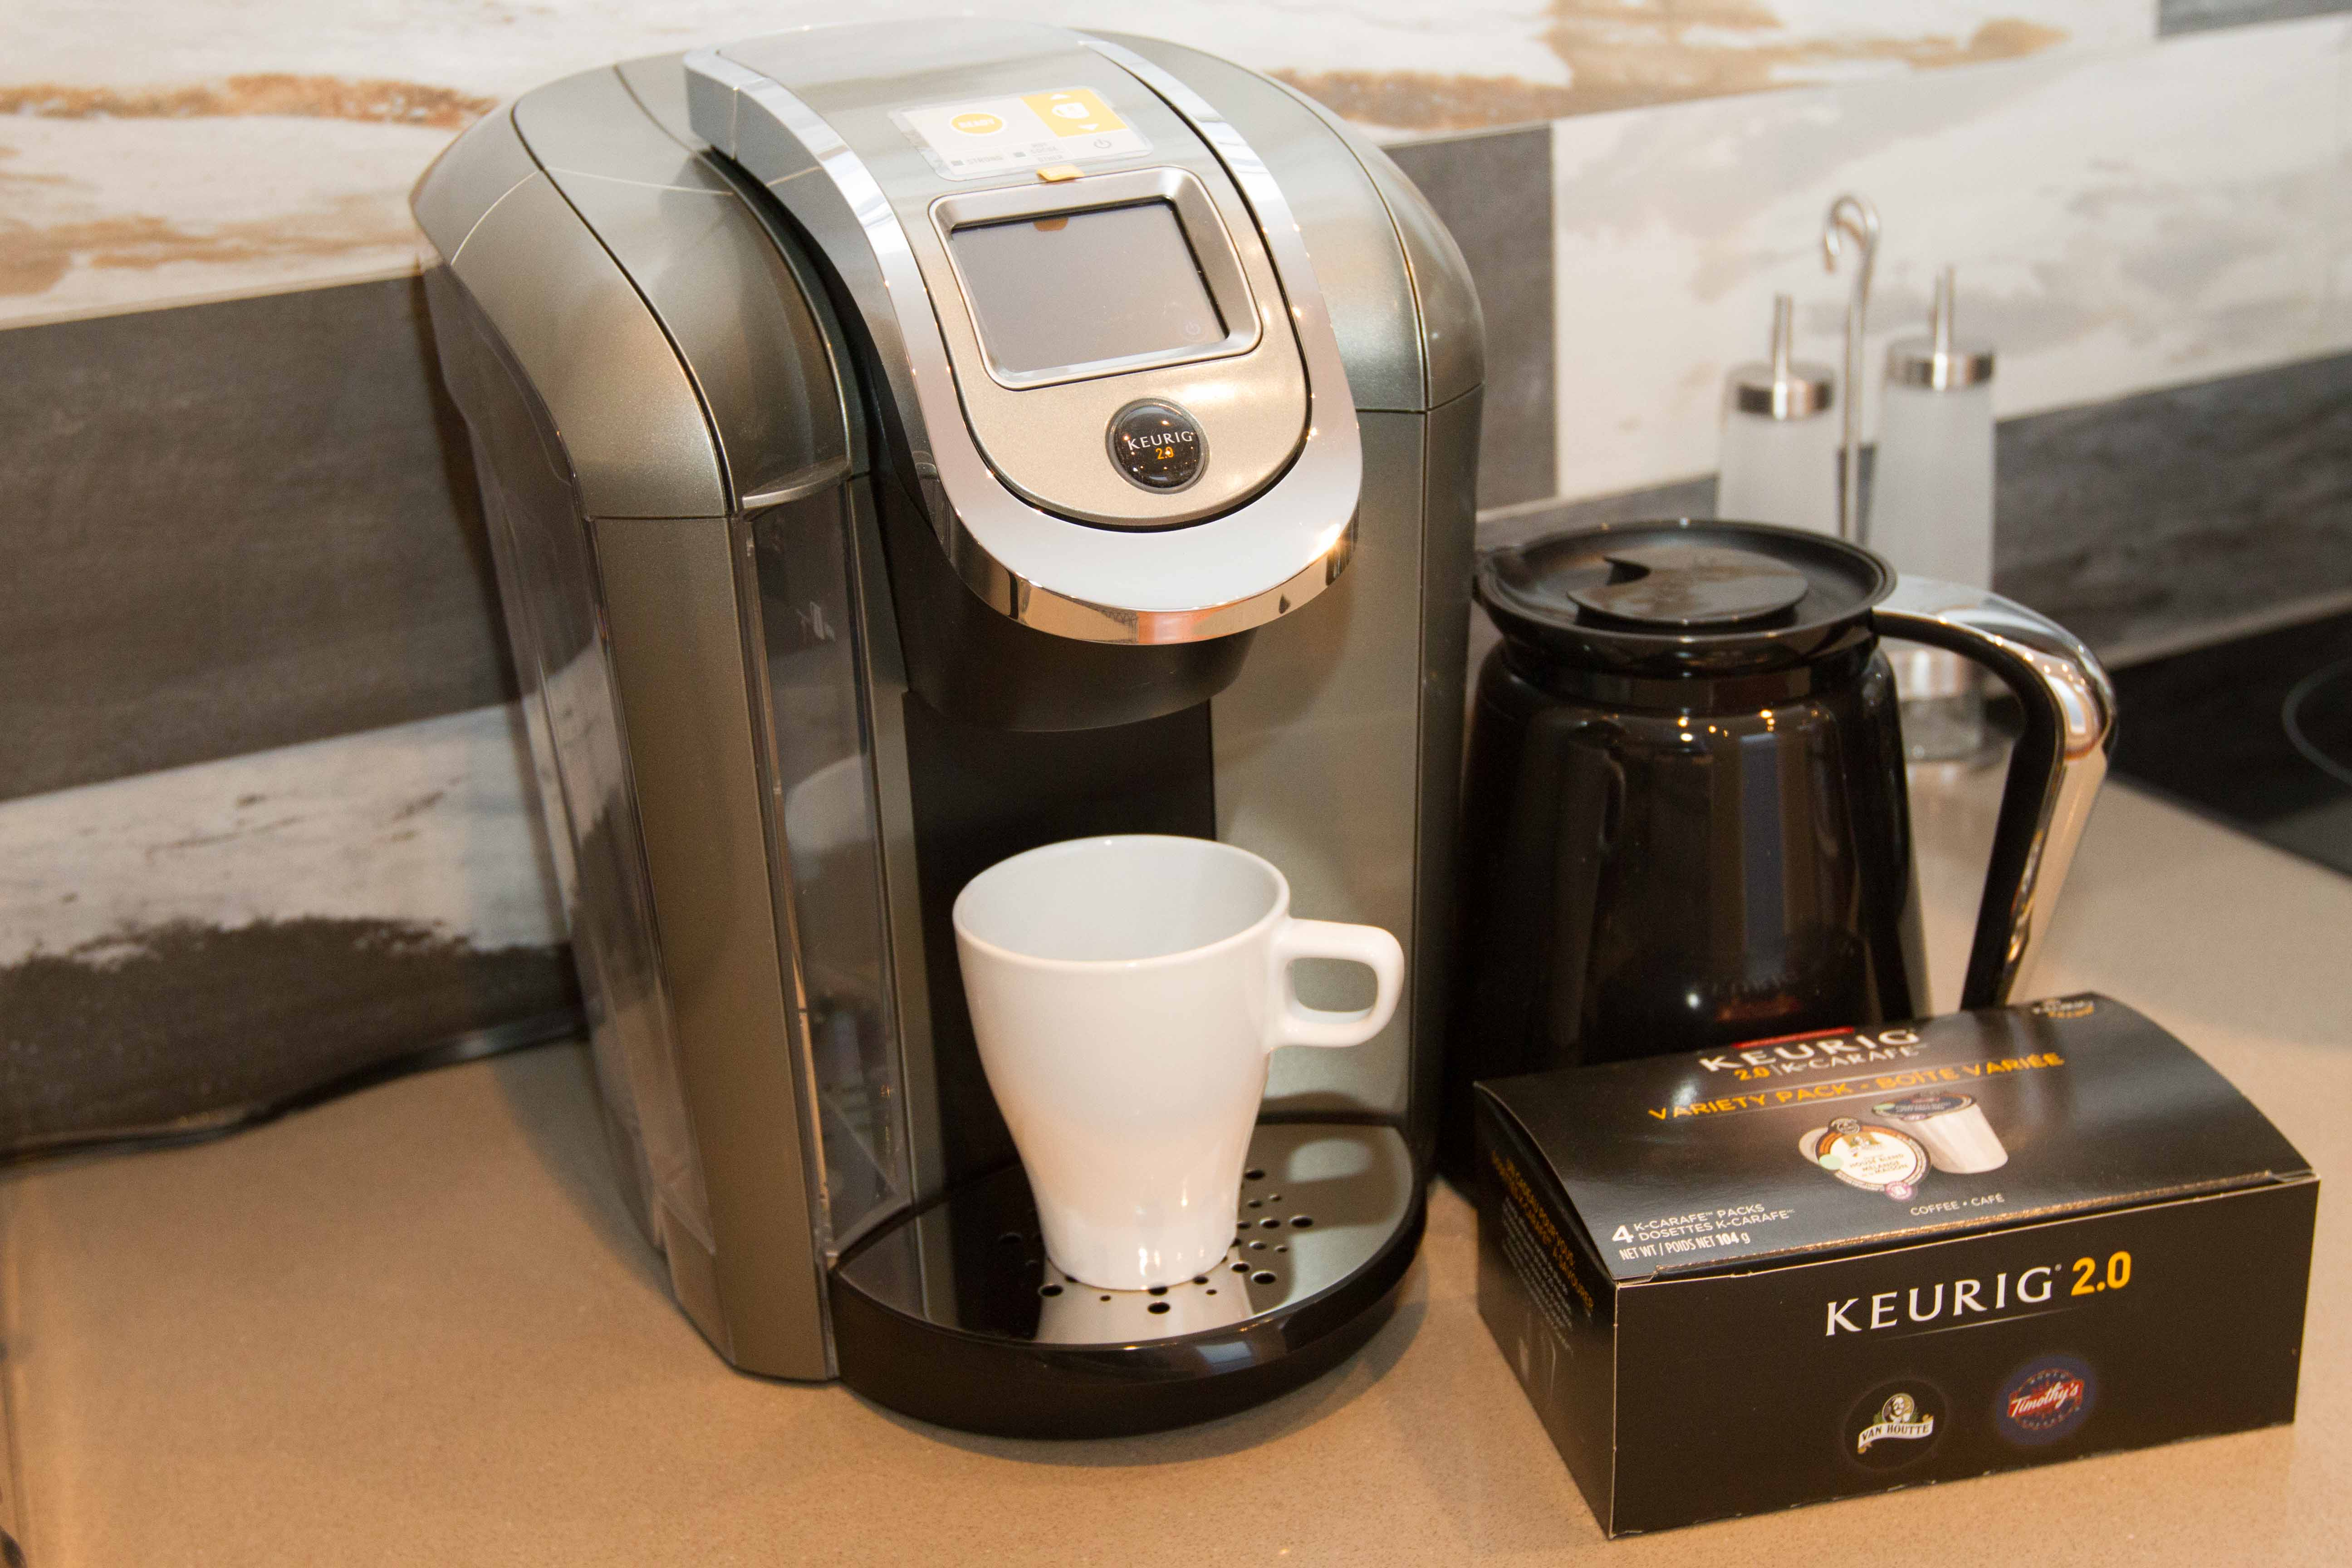 Keurig coffee machine with pods provided